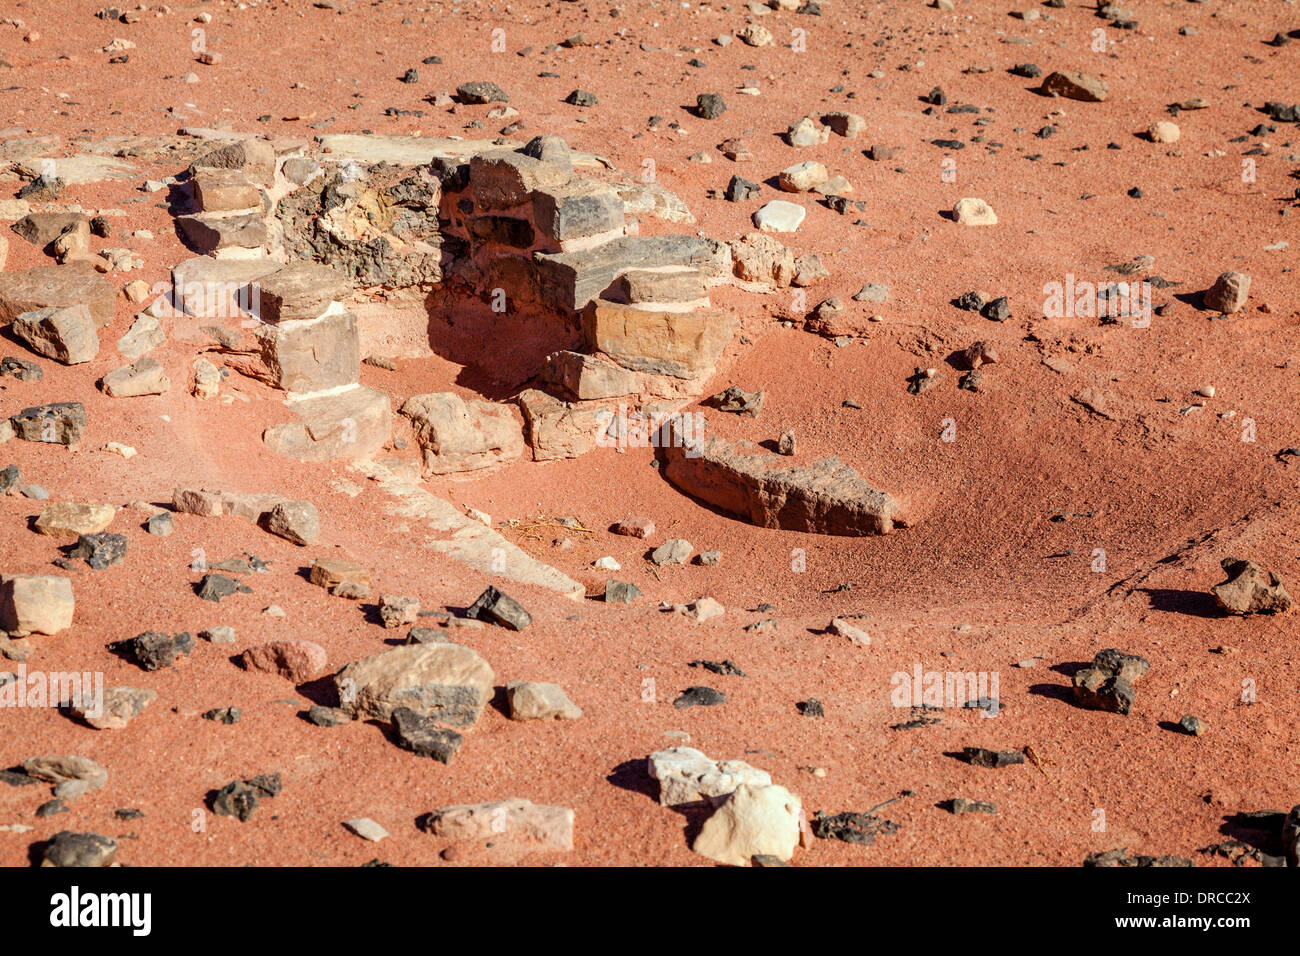 Sehr Ancient Furnace Stockfotos & Ancient Furnace Bilder - Alamy PW57